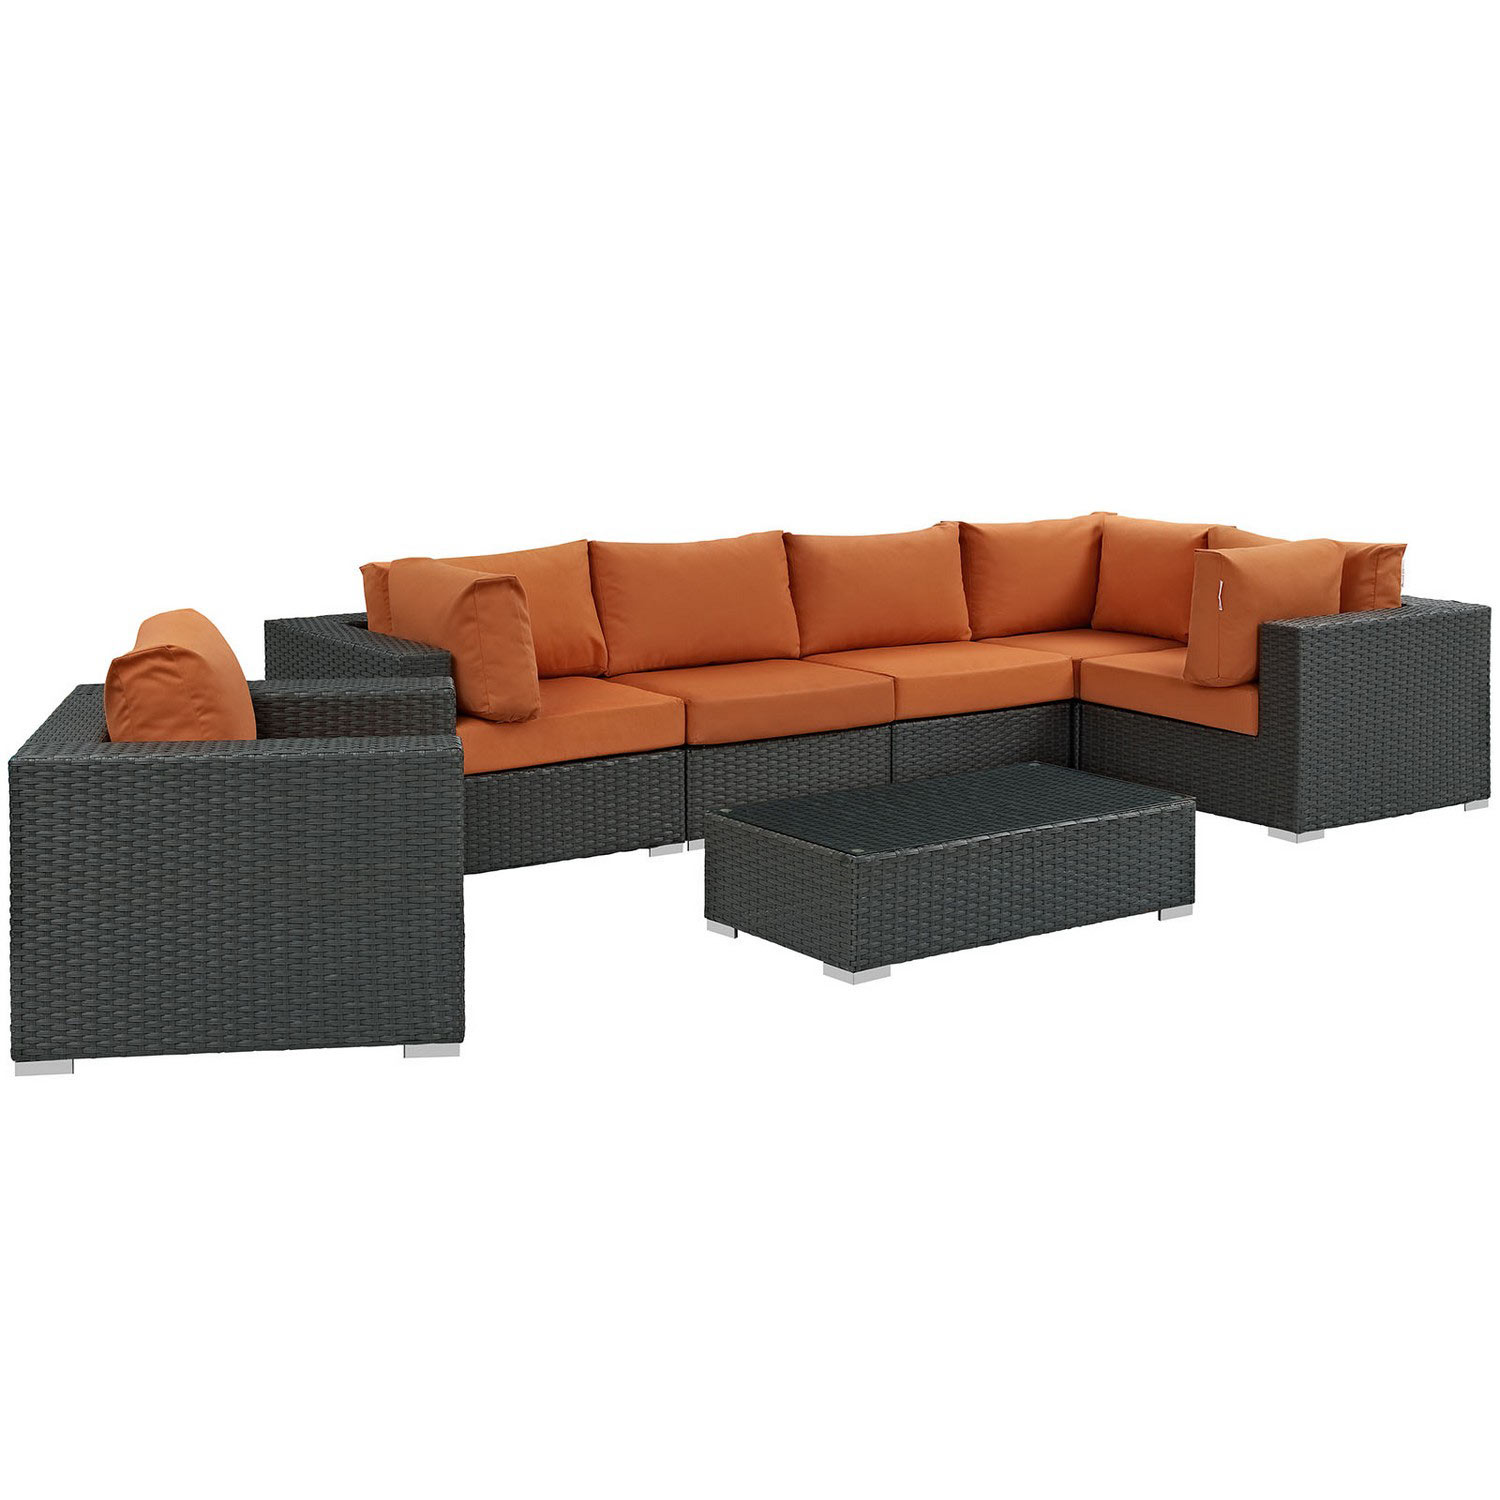 Modway Sojourn 7 Piece Outdoor Patio Sunbrella Sectional Set - Canvas Tuscan